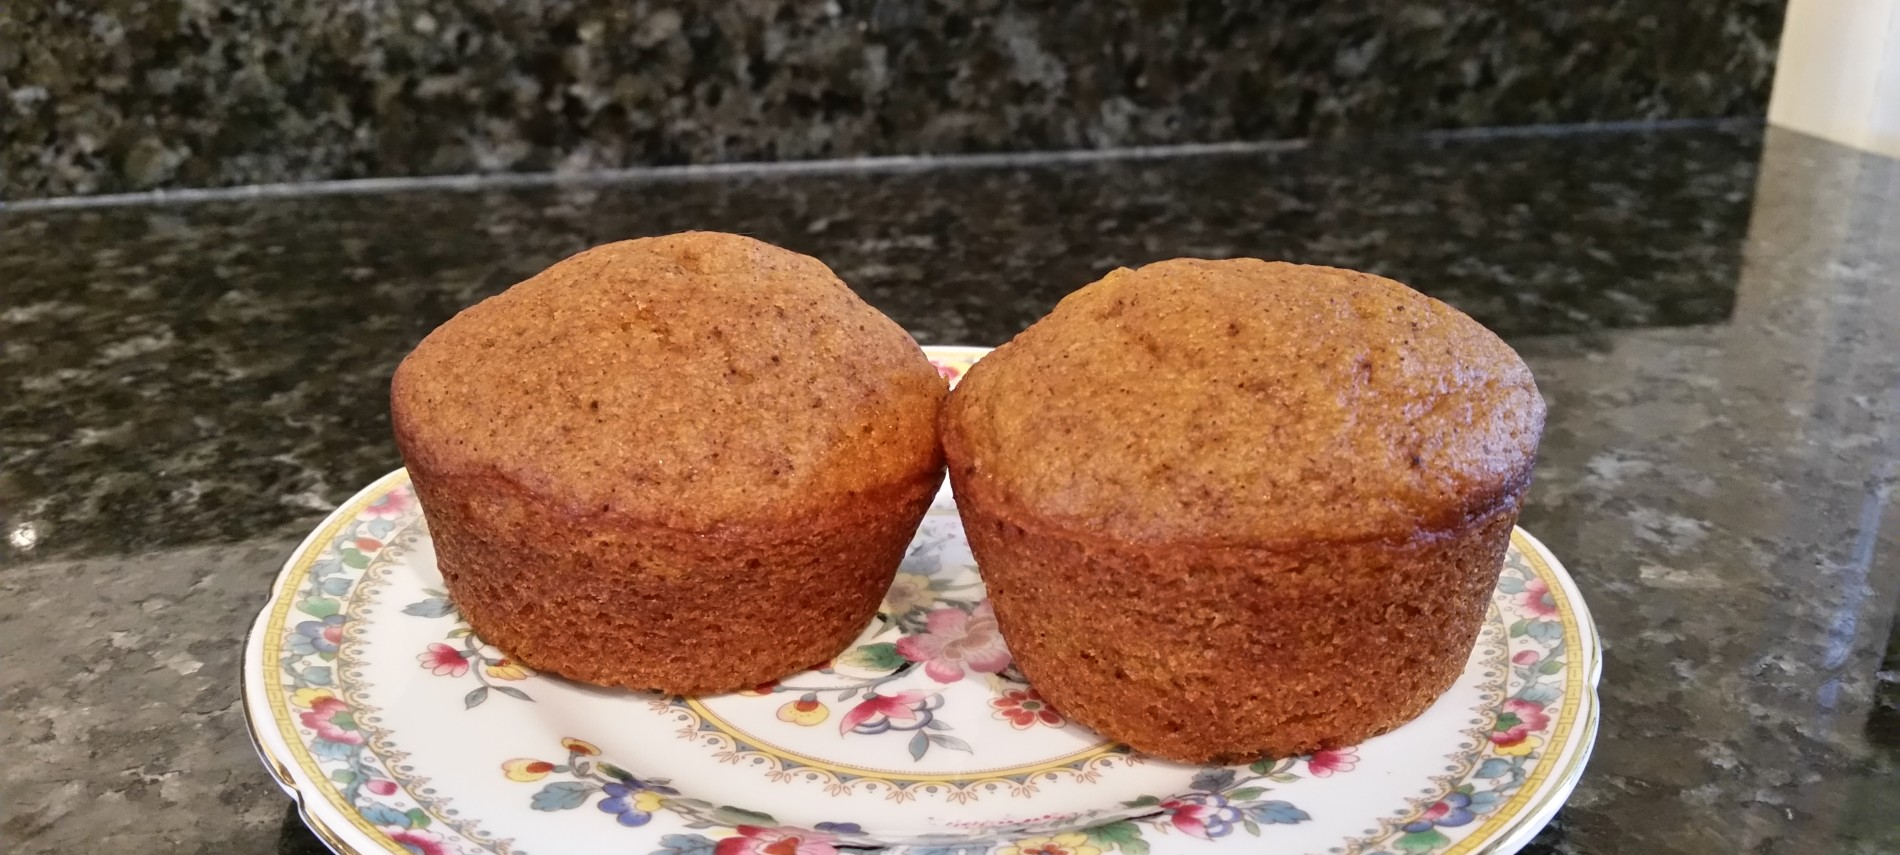 two pumpkin muffins on a china plate